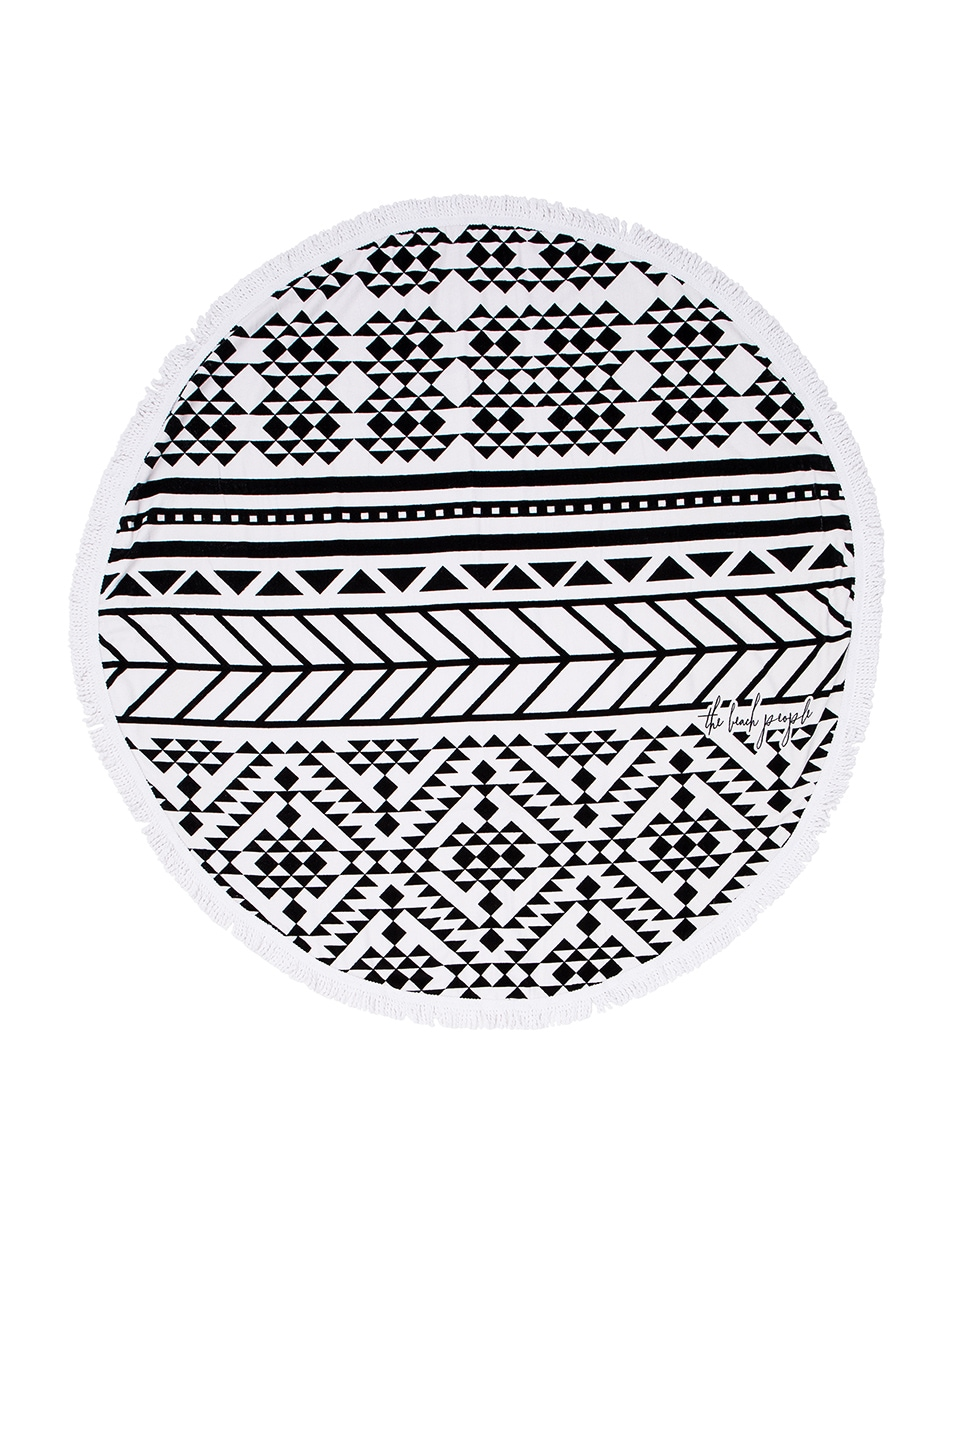 Image 1 of The Beach People Aztec Towel in Black & White